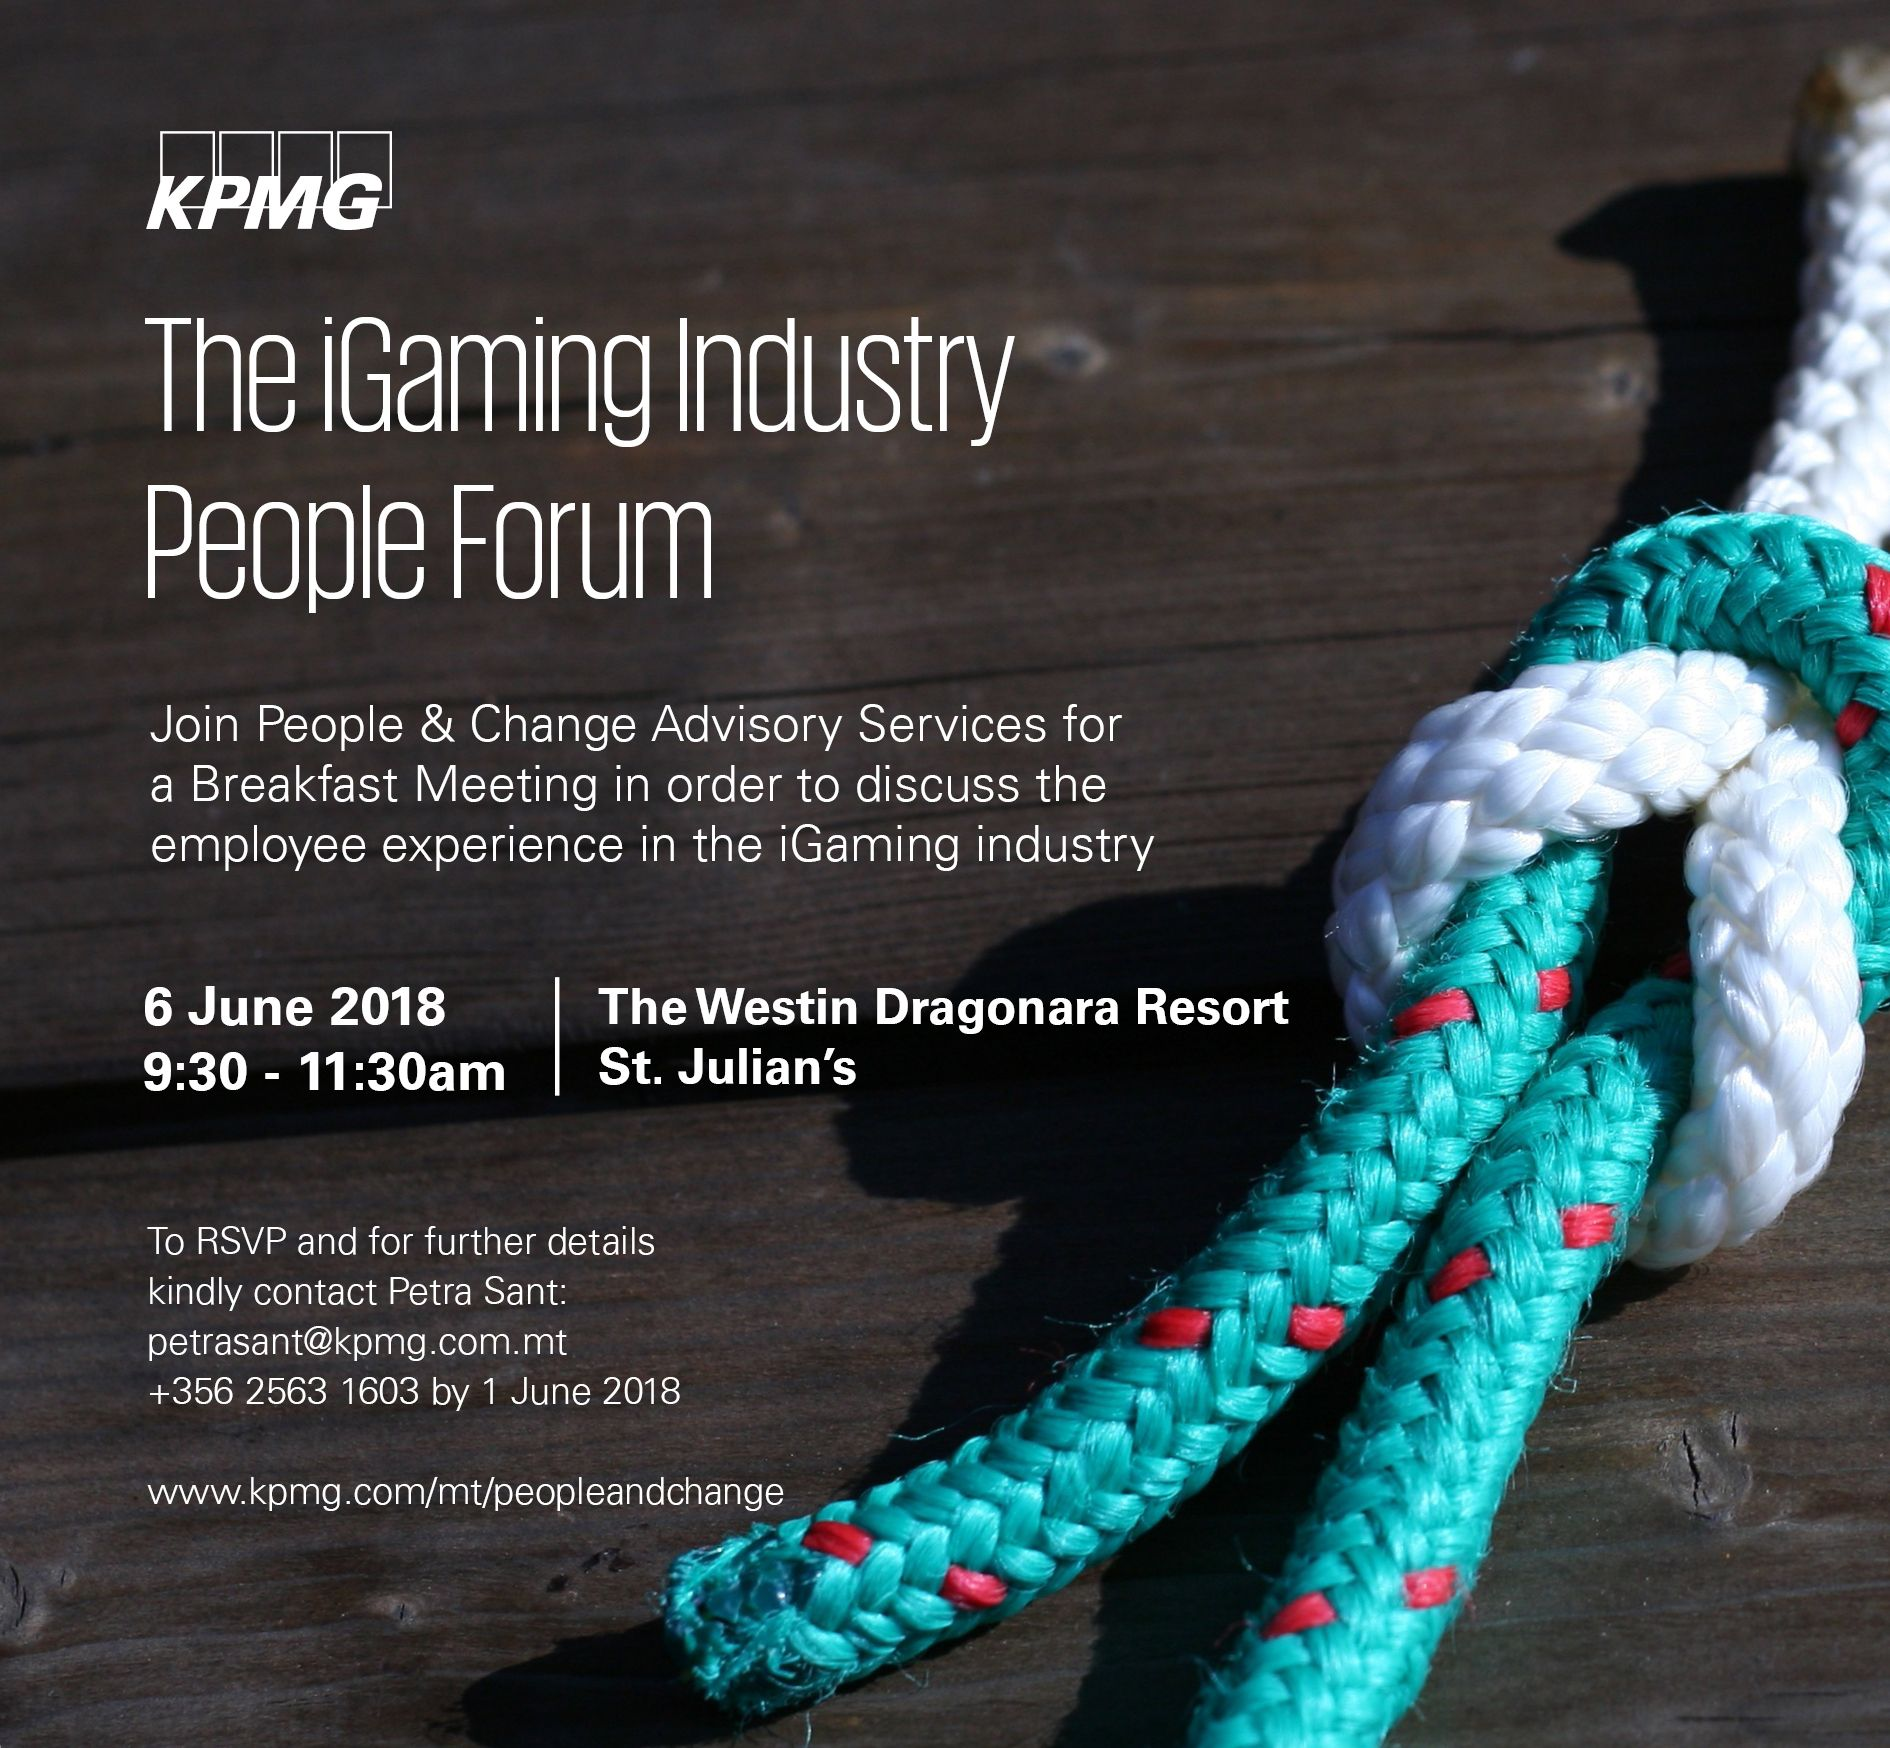 igaming industry people forum